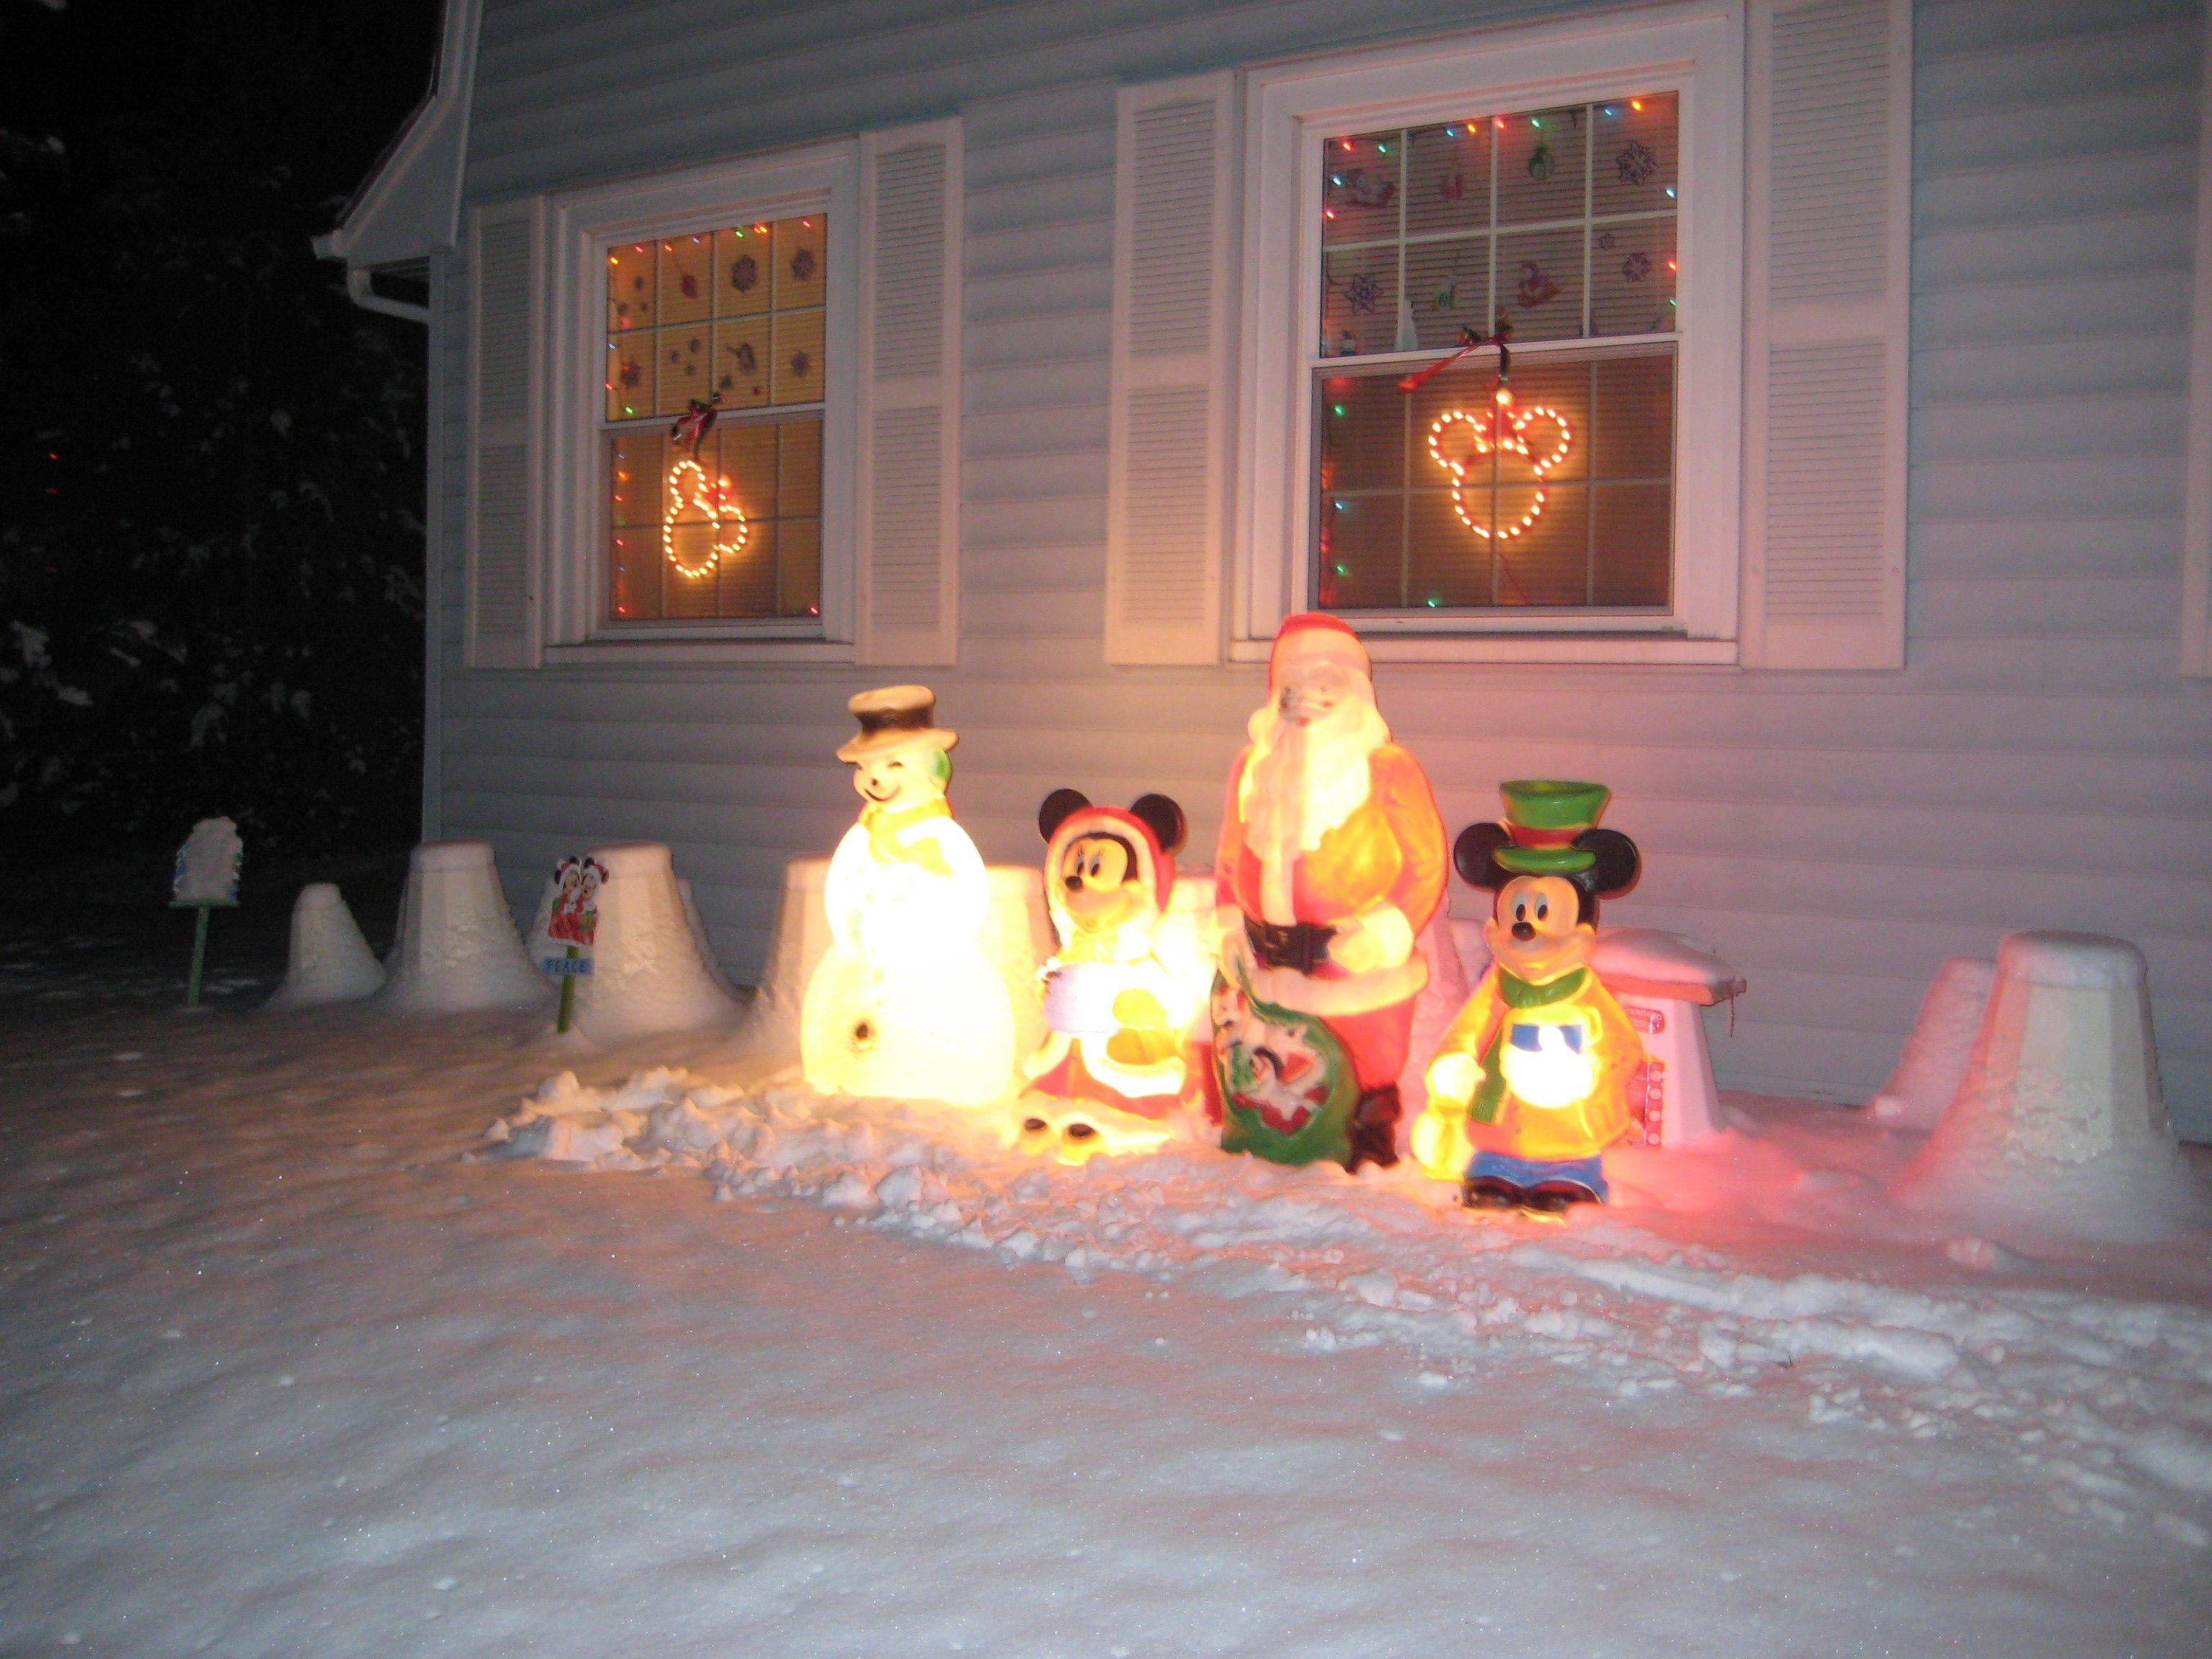 Mickey and Minnie are also part of the display at the Schaus home at 510 N. Arlington Heights Road in Itasca.